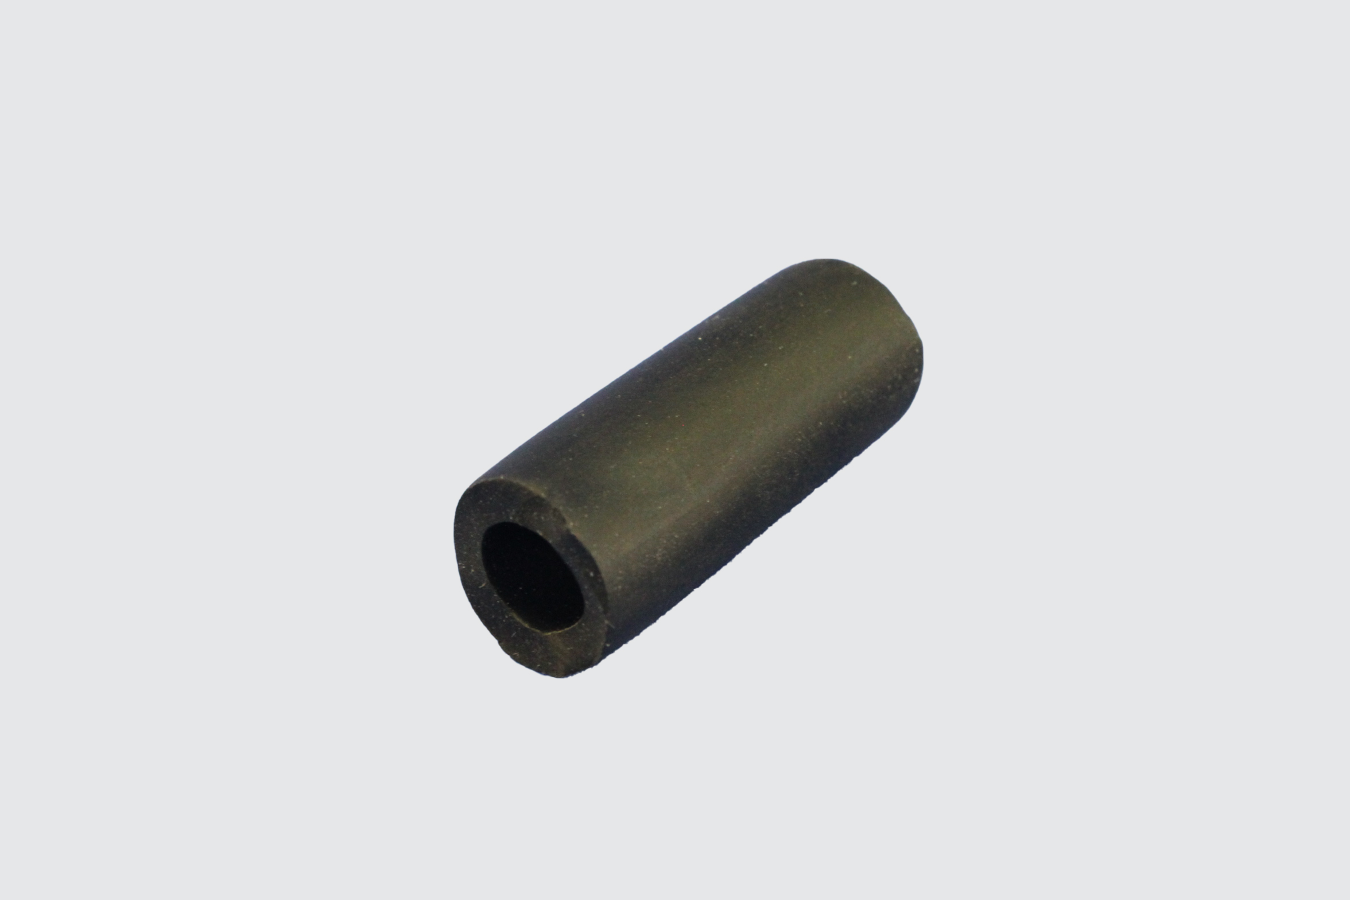 35360775 - TUBING, 5/16 I.D. SOLD BY THE INCH